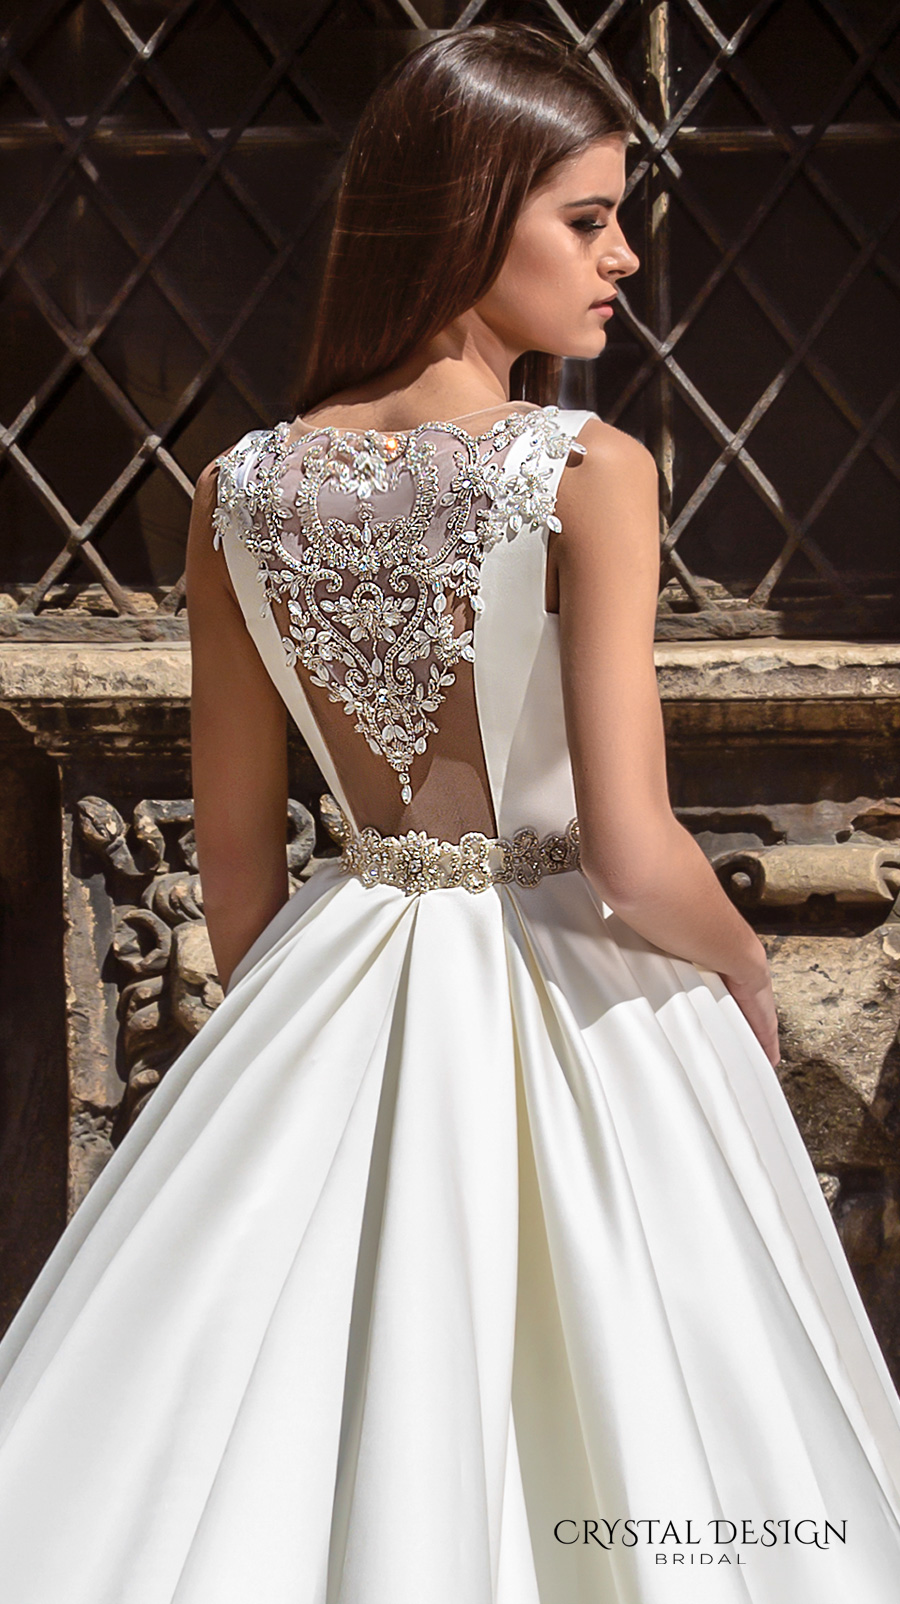 crystal design bridal 2016 sleeveless boat neckline modern simple embellished belt elegant a line wedding dress illusion back long train (valencia) zbv